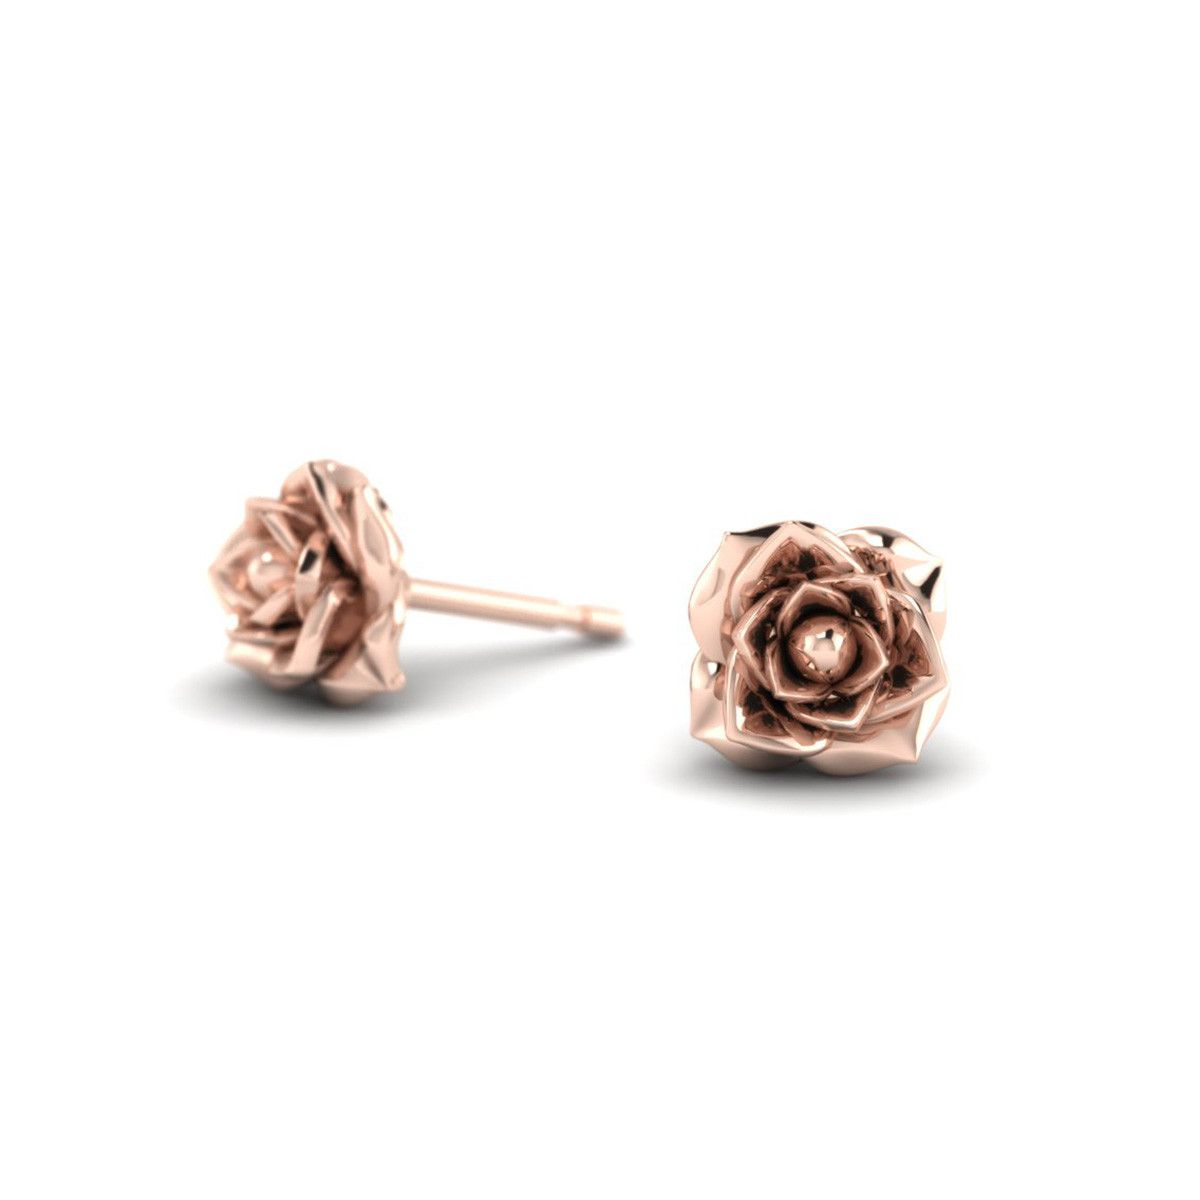 Rose Gold Earrings Studs Whole Stainless Steel Rose Gold